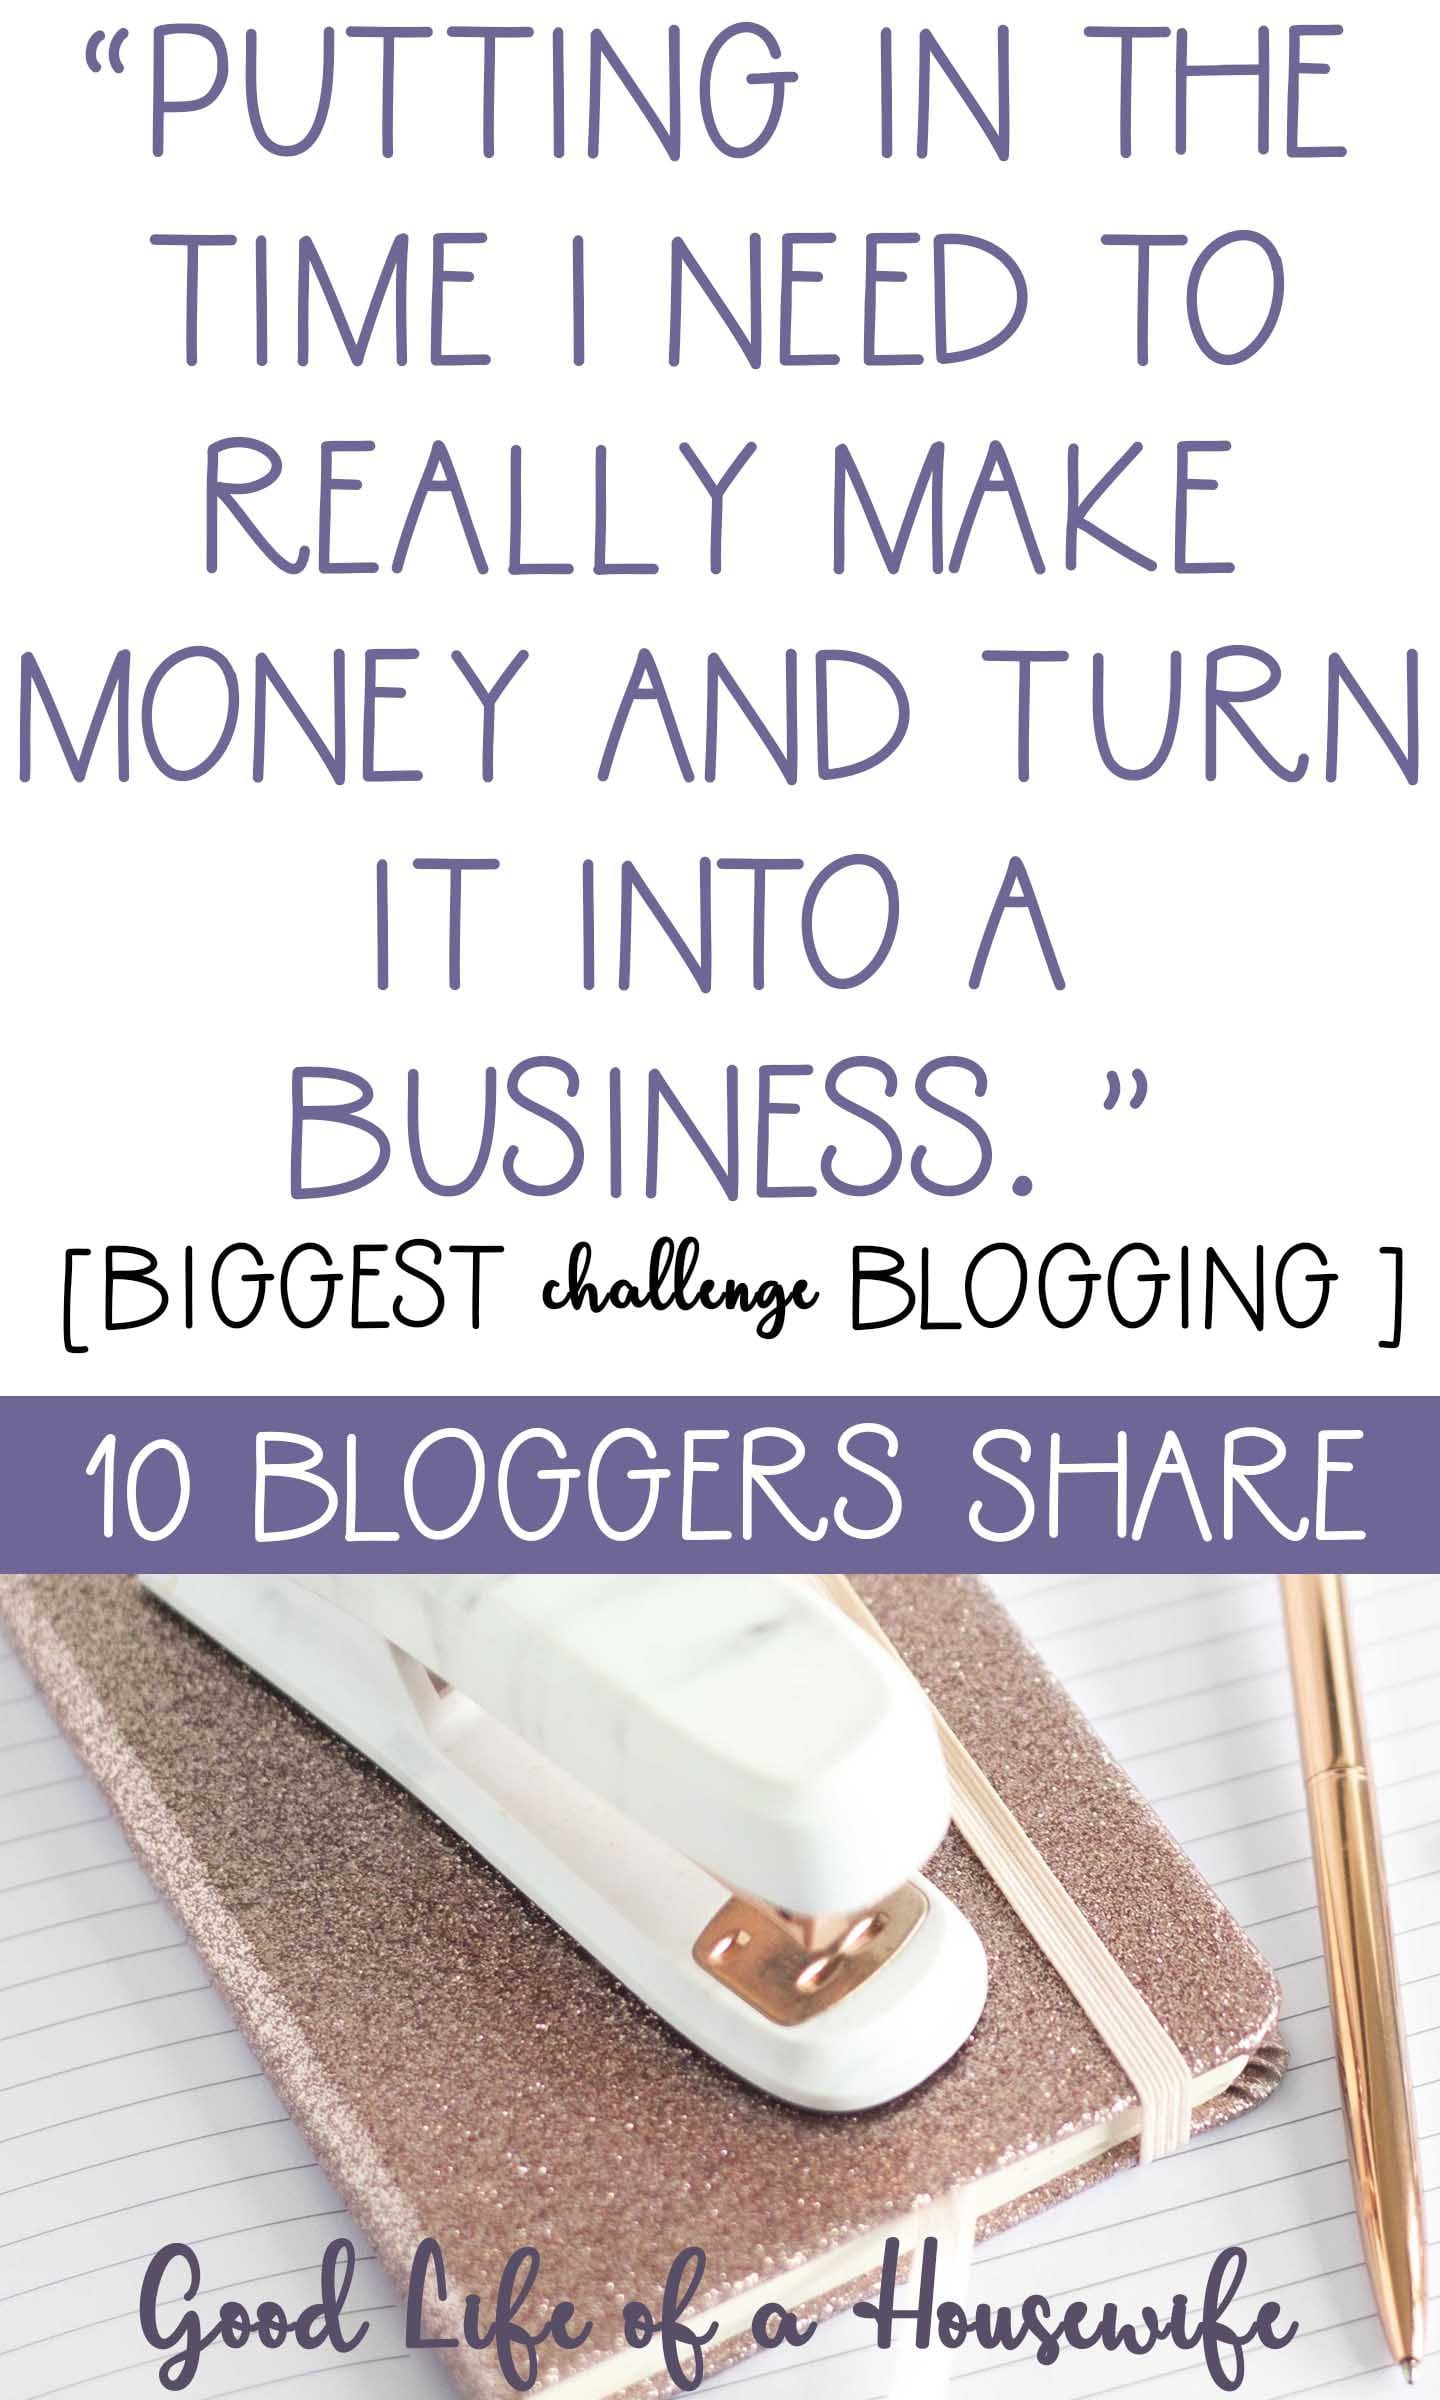 10 bloggers share their biggest challenge blogging. The challenge of putting in the time and turning it into a business.